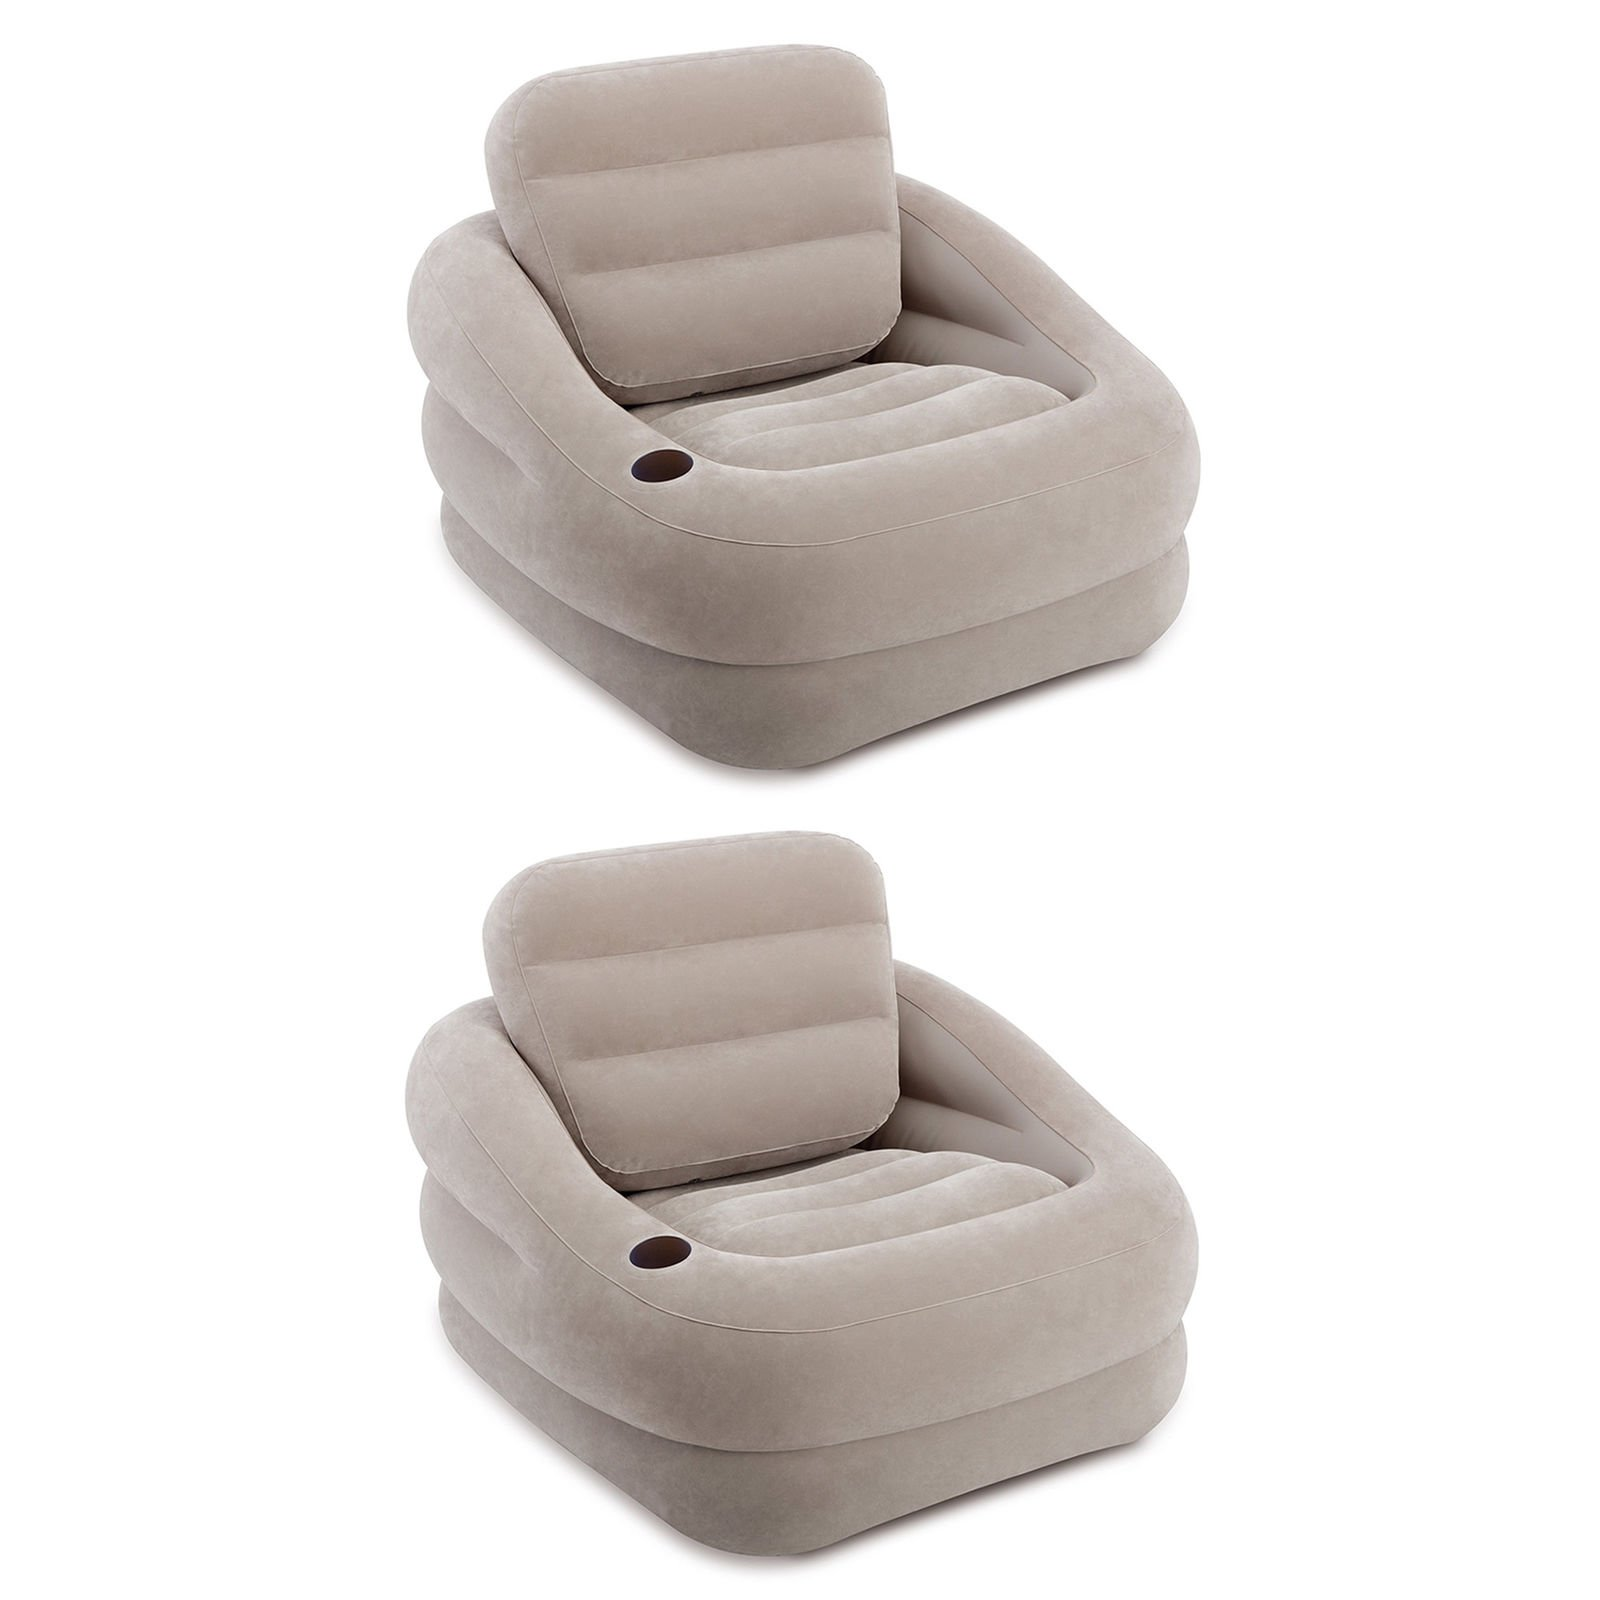 Inflatable Khaki Accent Chair with Cup Holder and Water Base (2 Pack) With Ebook